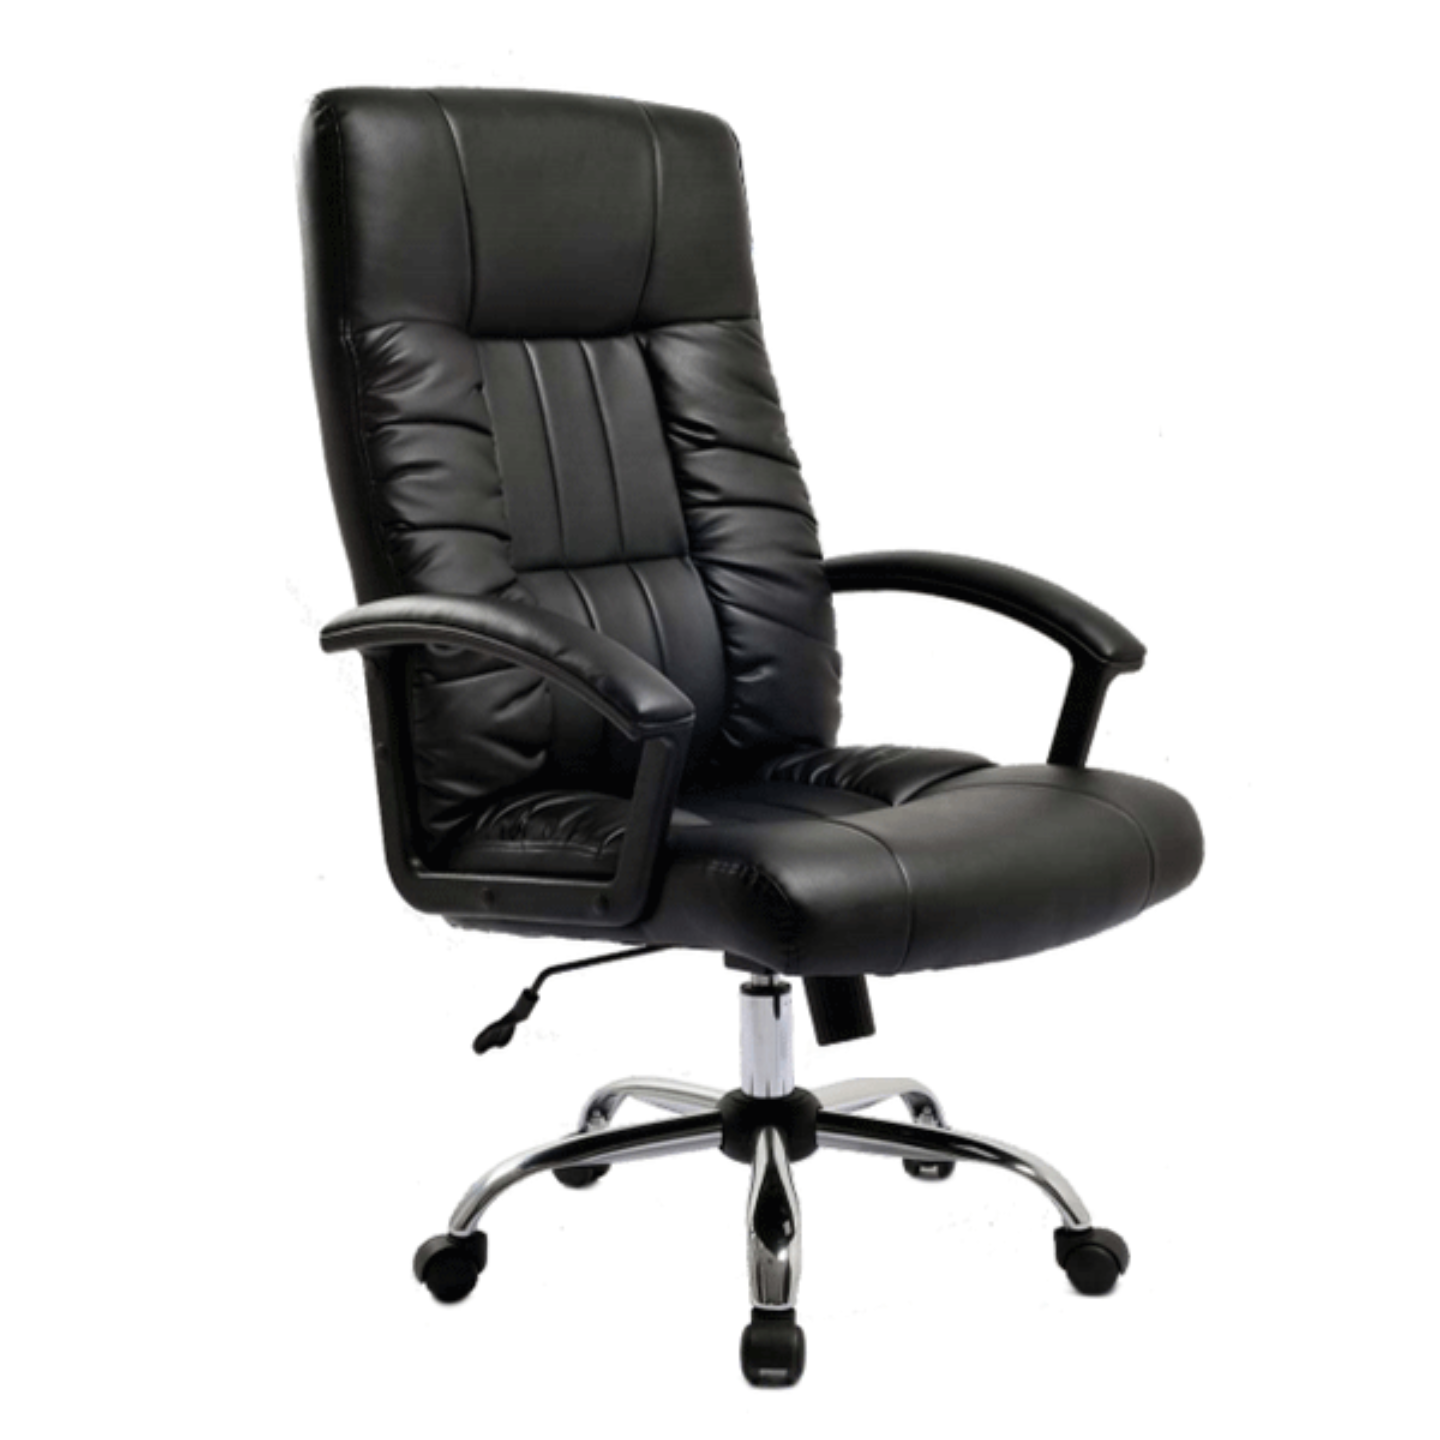 6008 Director Chair